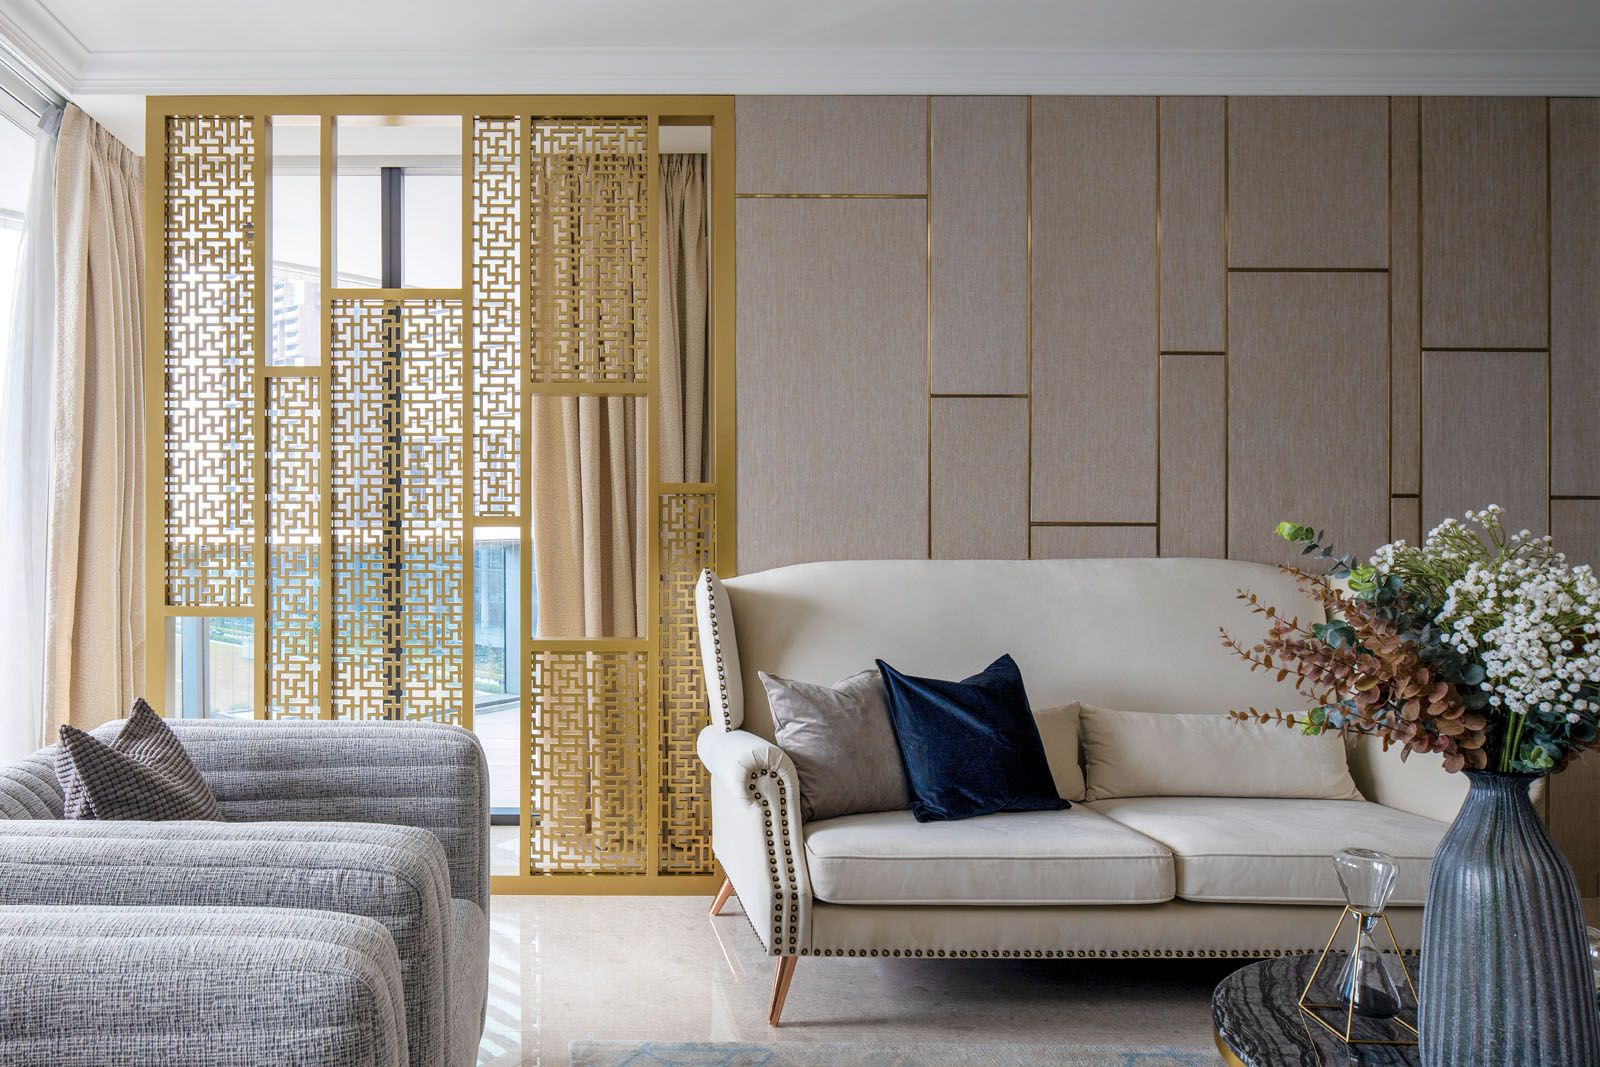 The gold lattice screen brings an opulent touch to the home while the neutral palette keeps the look elegant